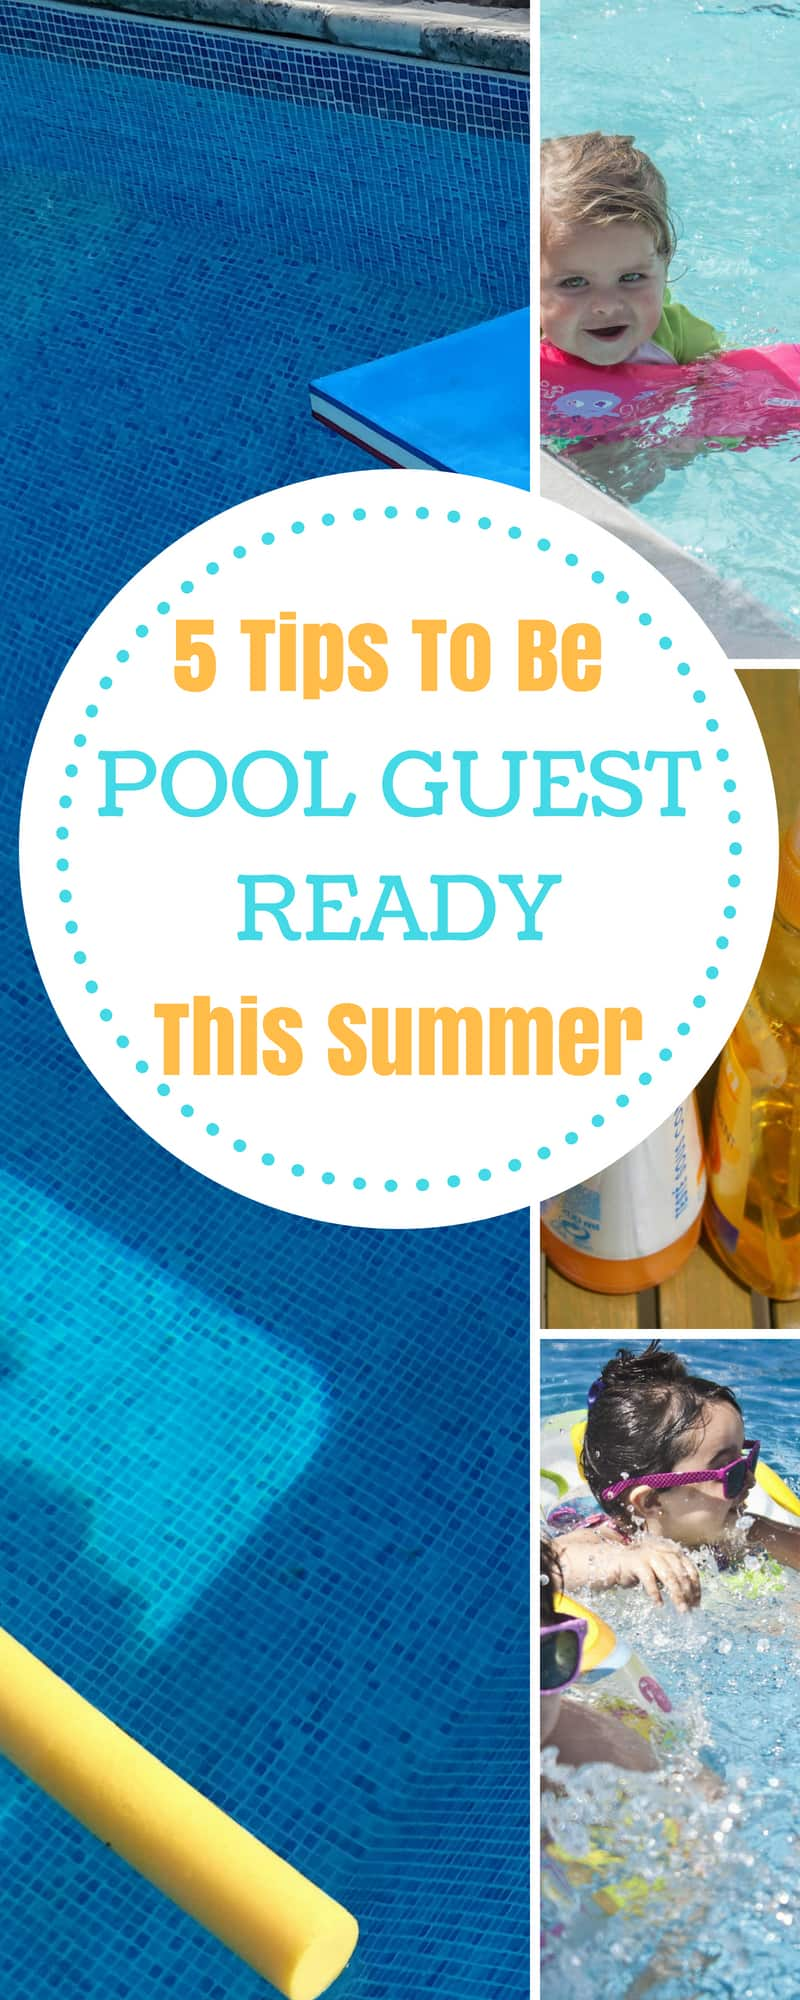 Family--5 Tips to be Pool Guest Ready This Summer--The Organized Mom